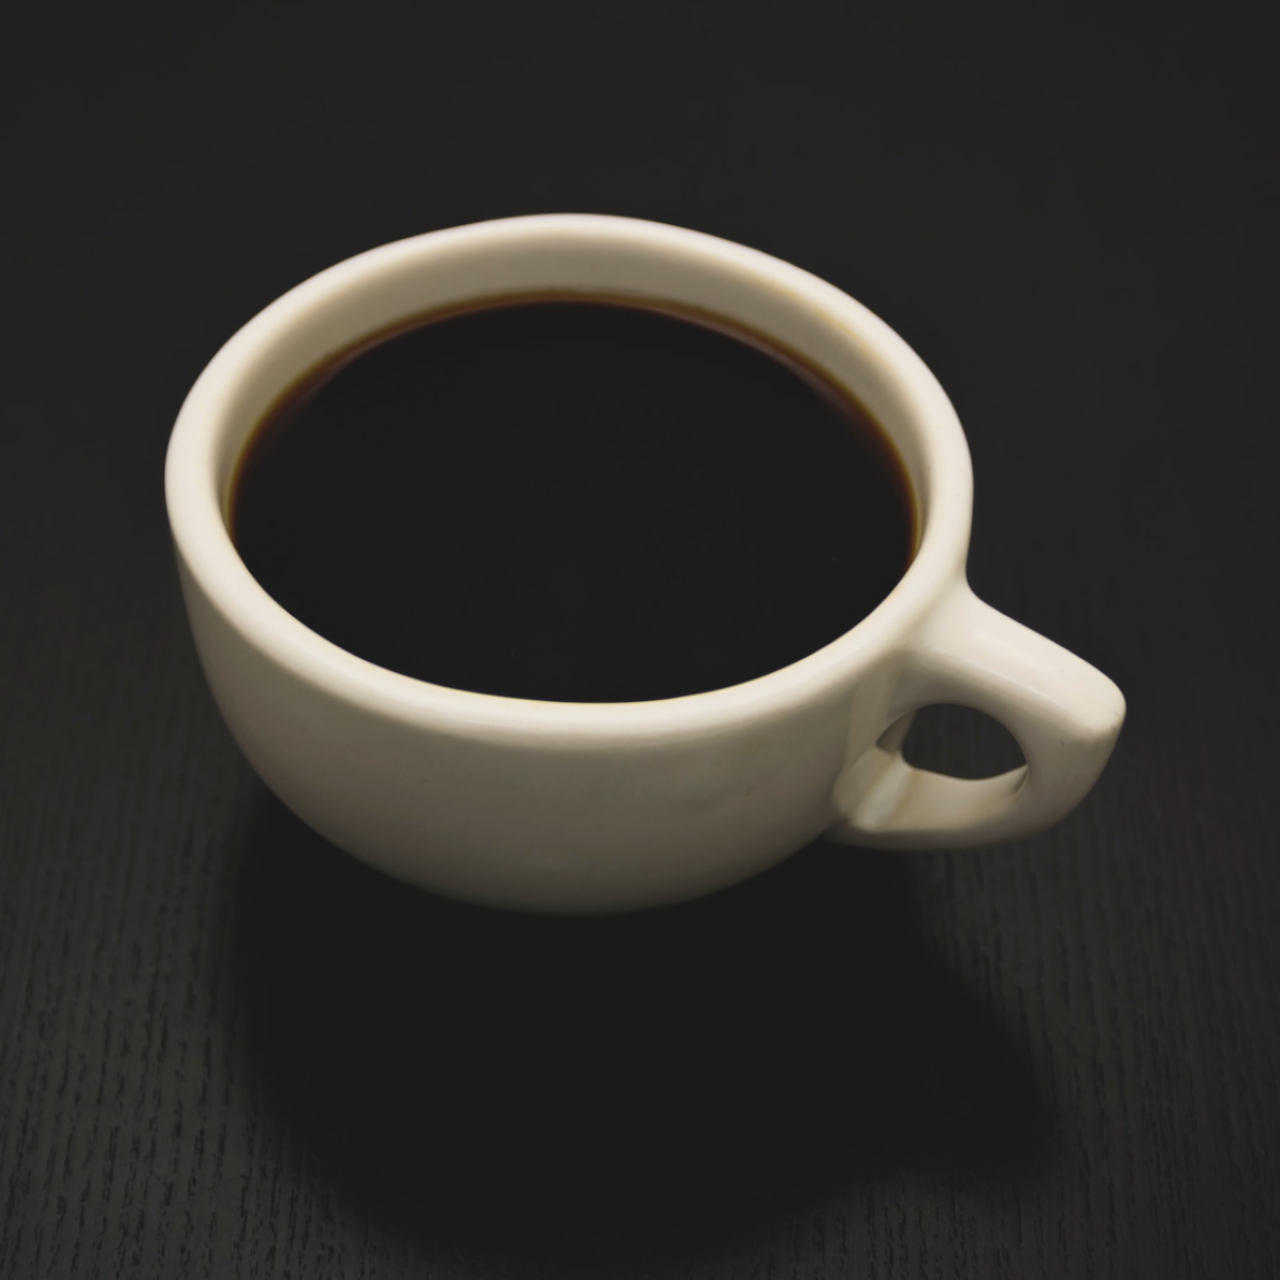 CoffeeMugsteve-harvey-CBUo9kBBZyE-unsplash.jpg